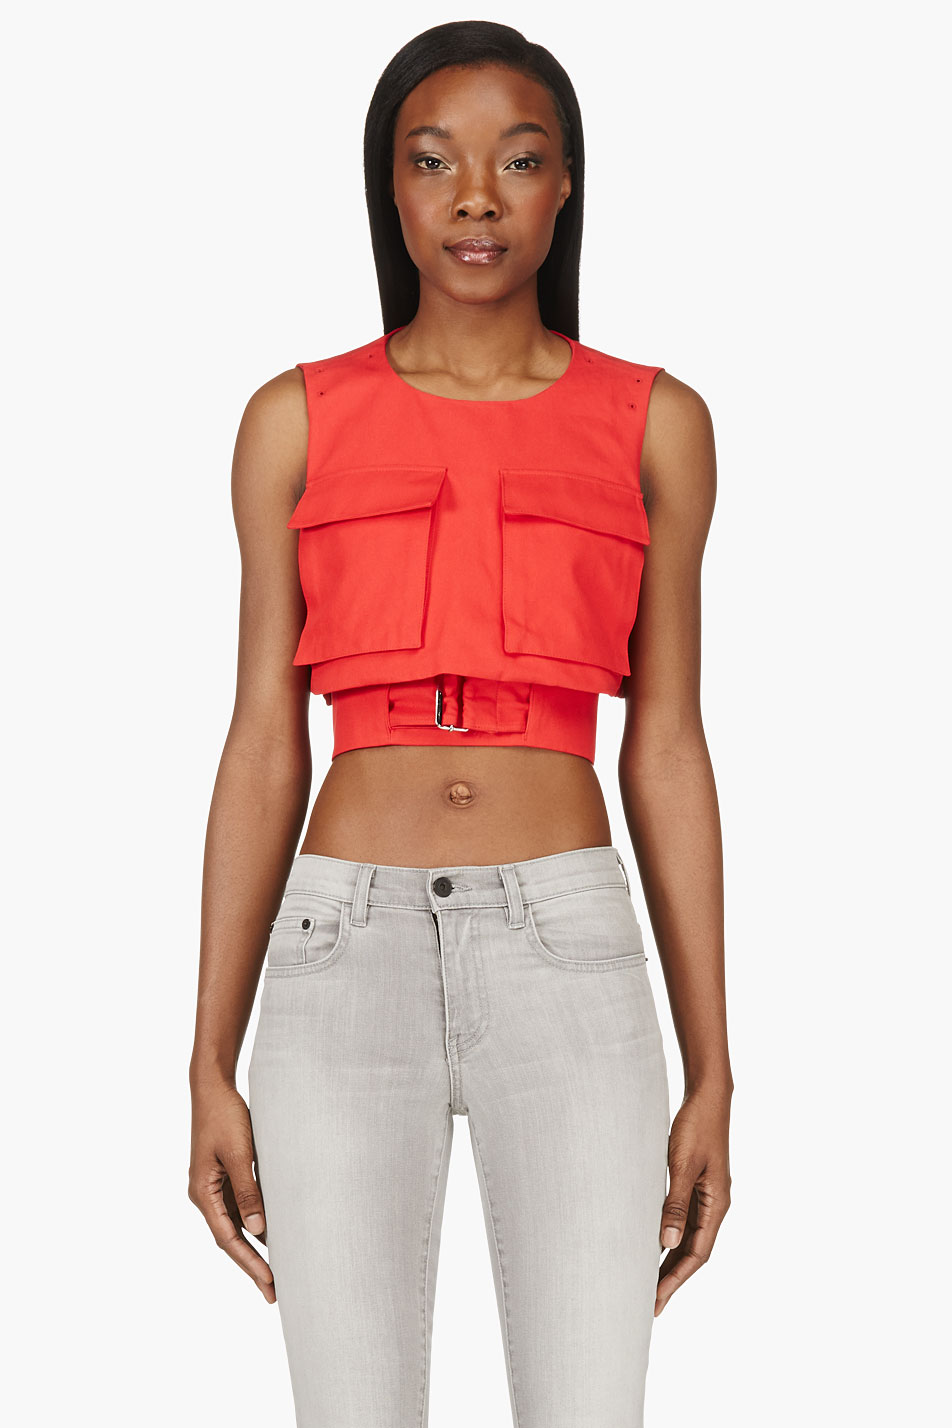 alexander mcqueen red belted crop top